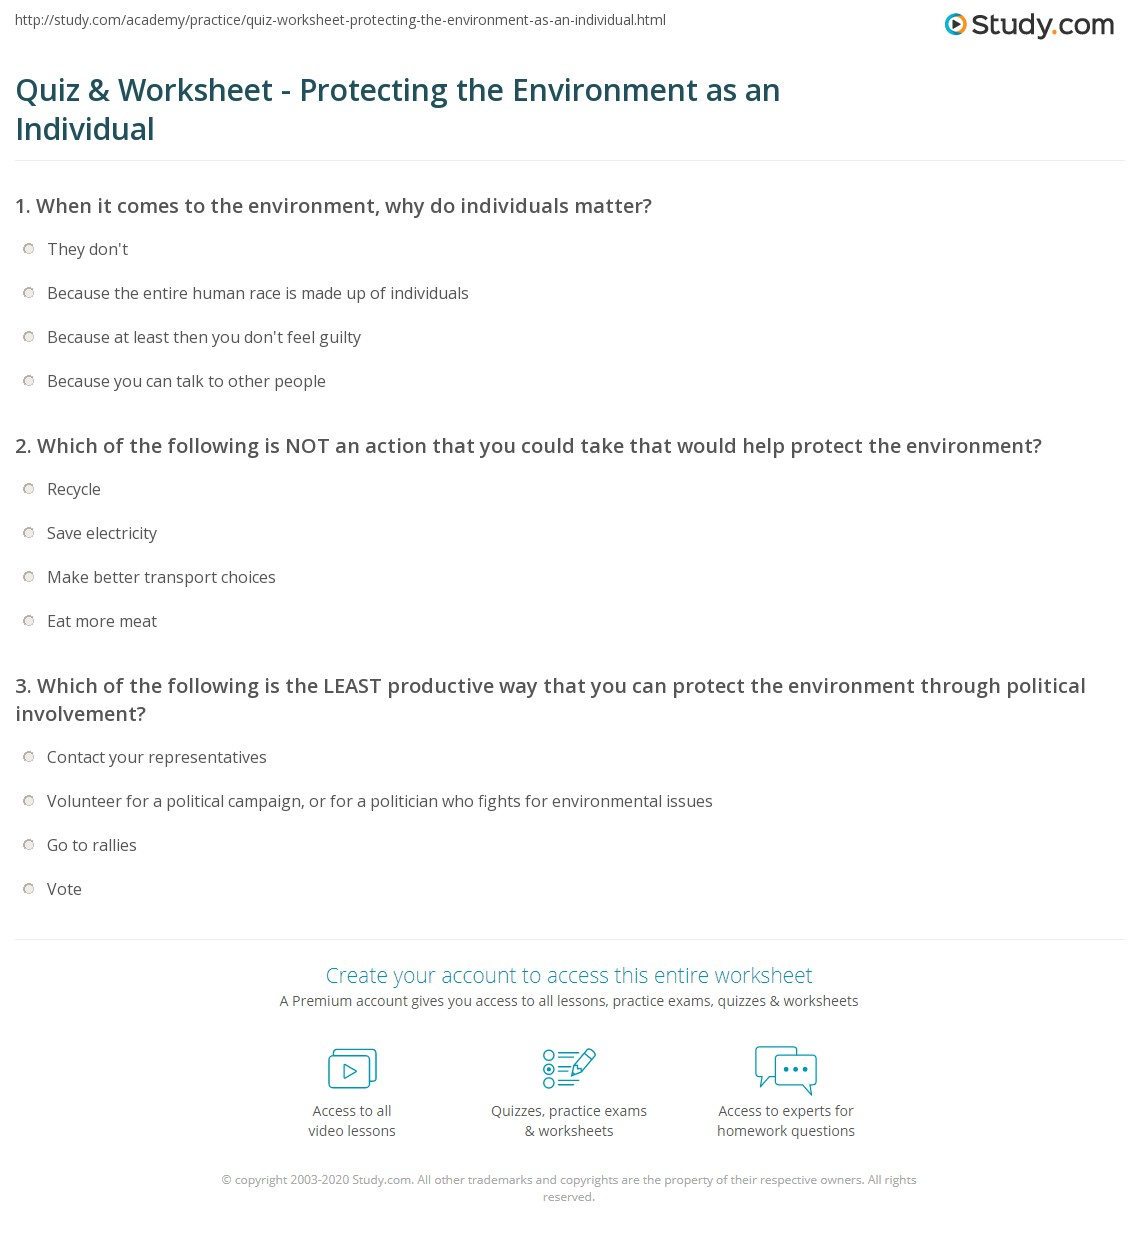 Skills Worksheet Critical Thinking Holt Environmental